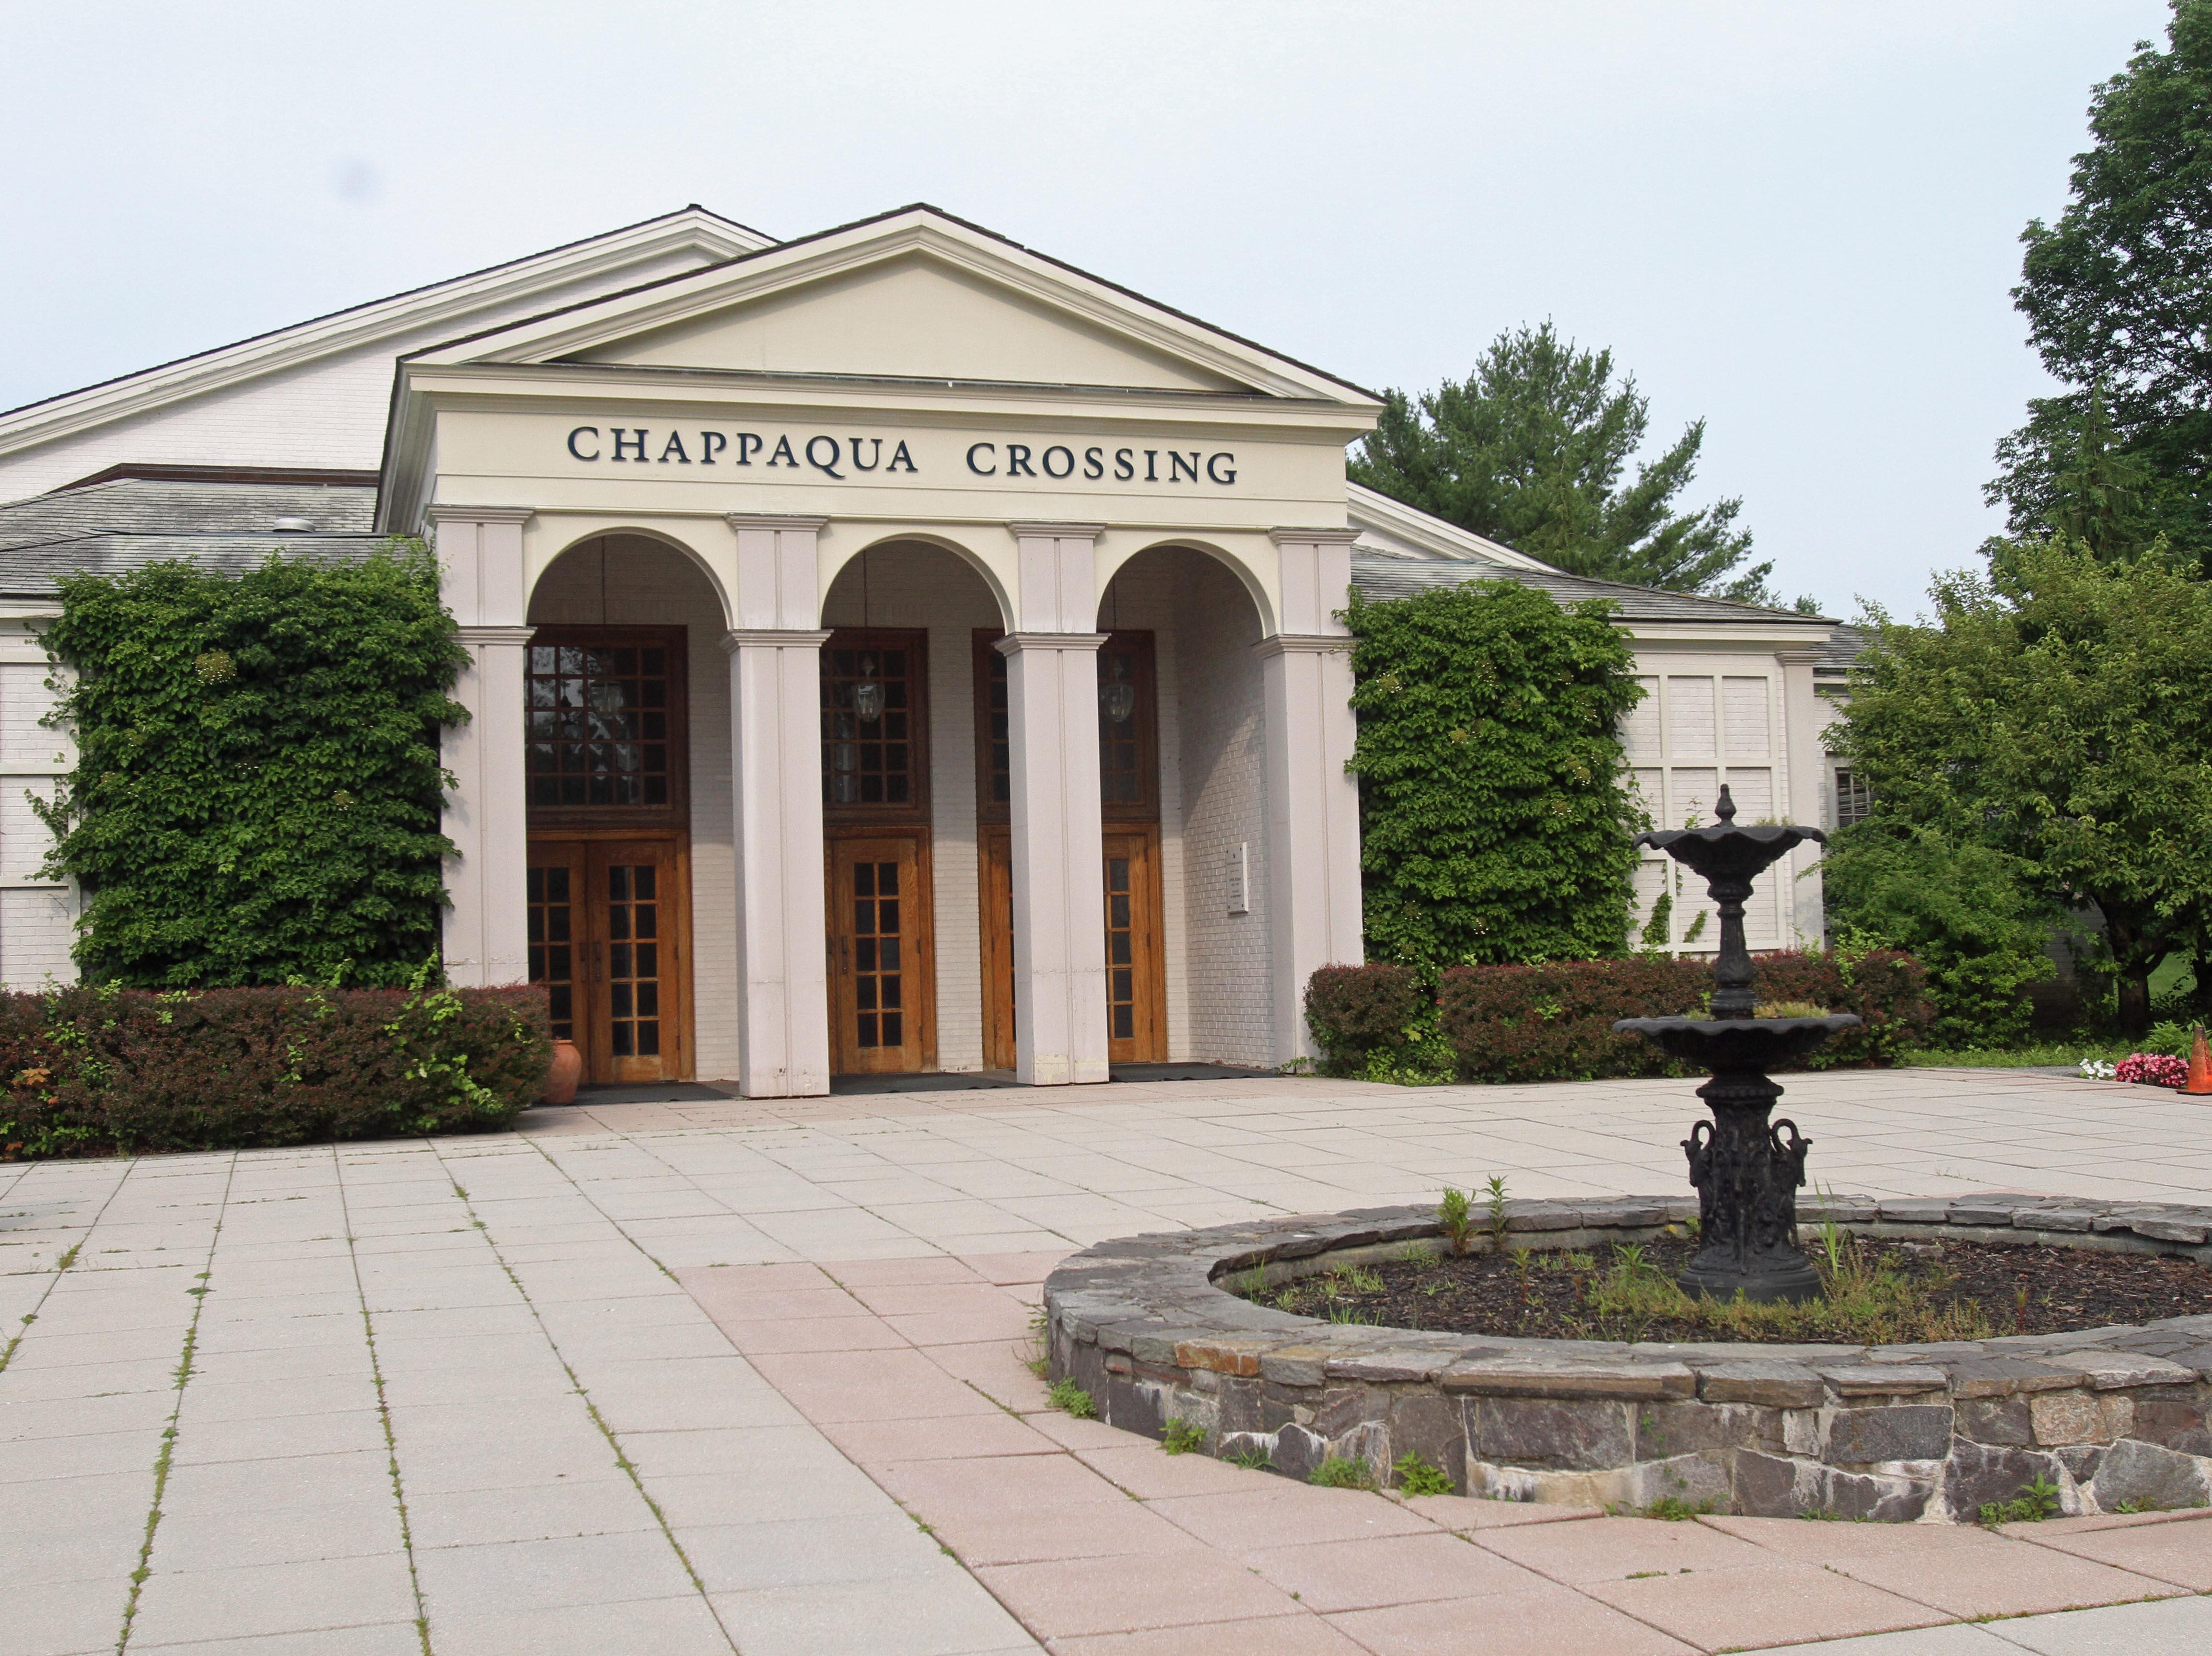 The DeWitt Wallace Auditorium at Chappaqua Crossing in Chappaqua.